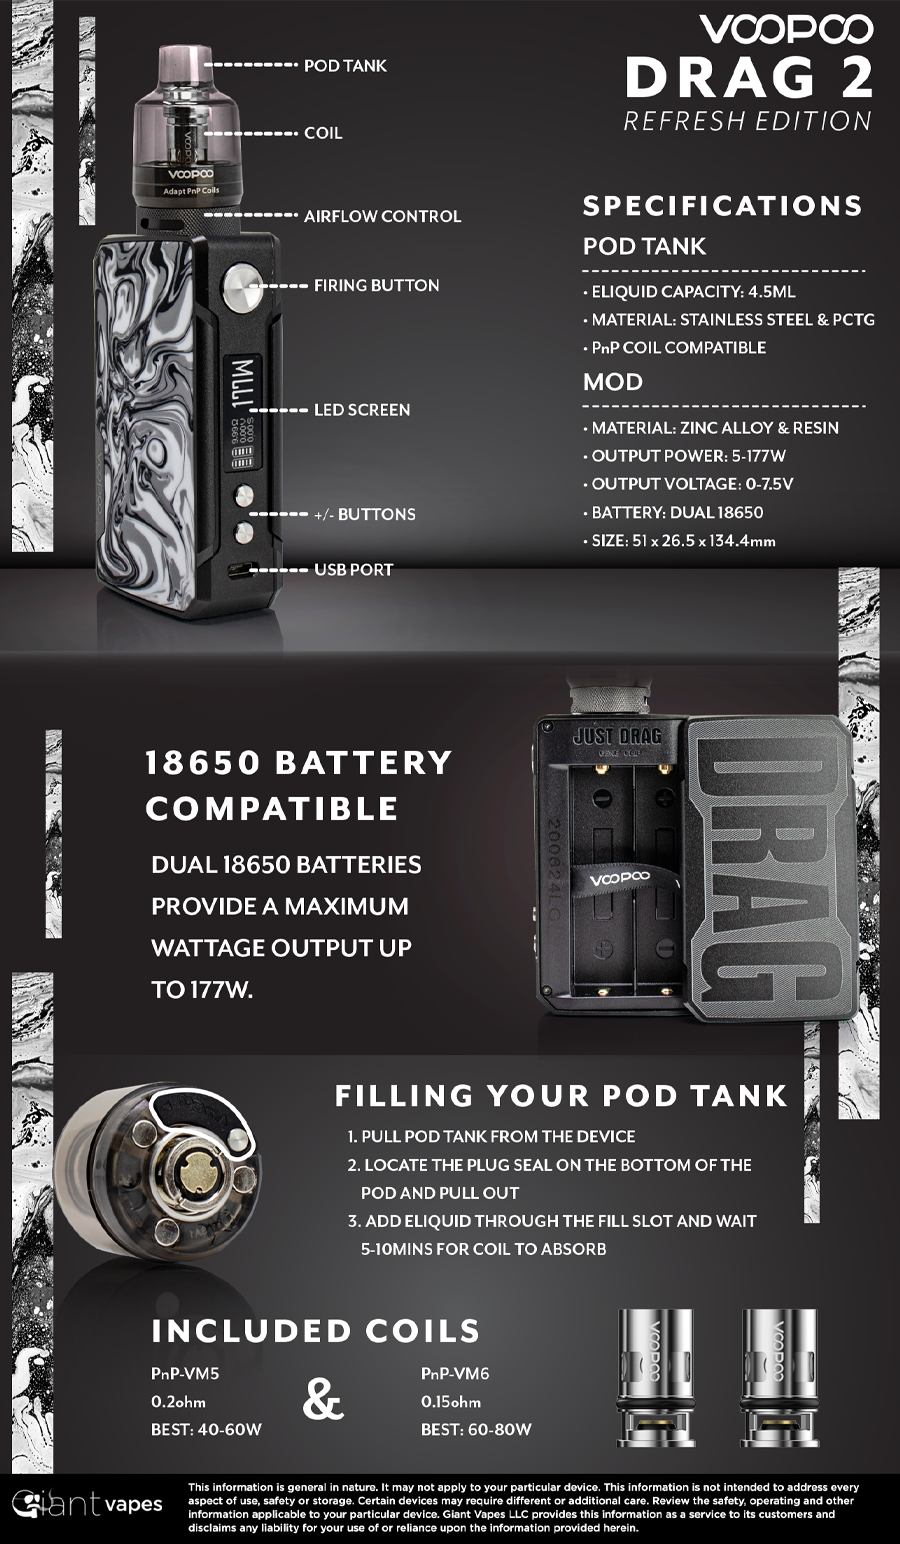 VOOPOO DRAG 2 Refresh Kit Infographic